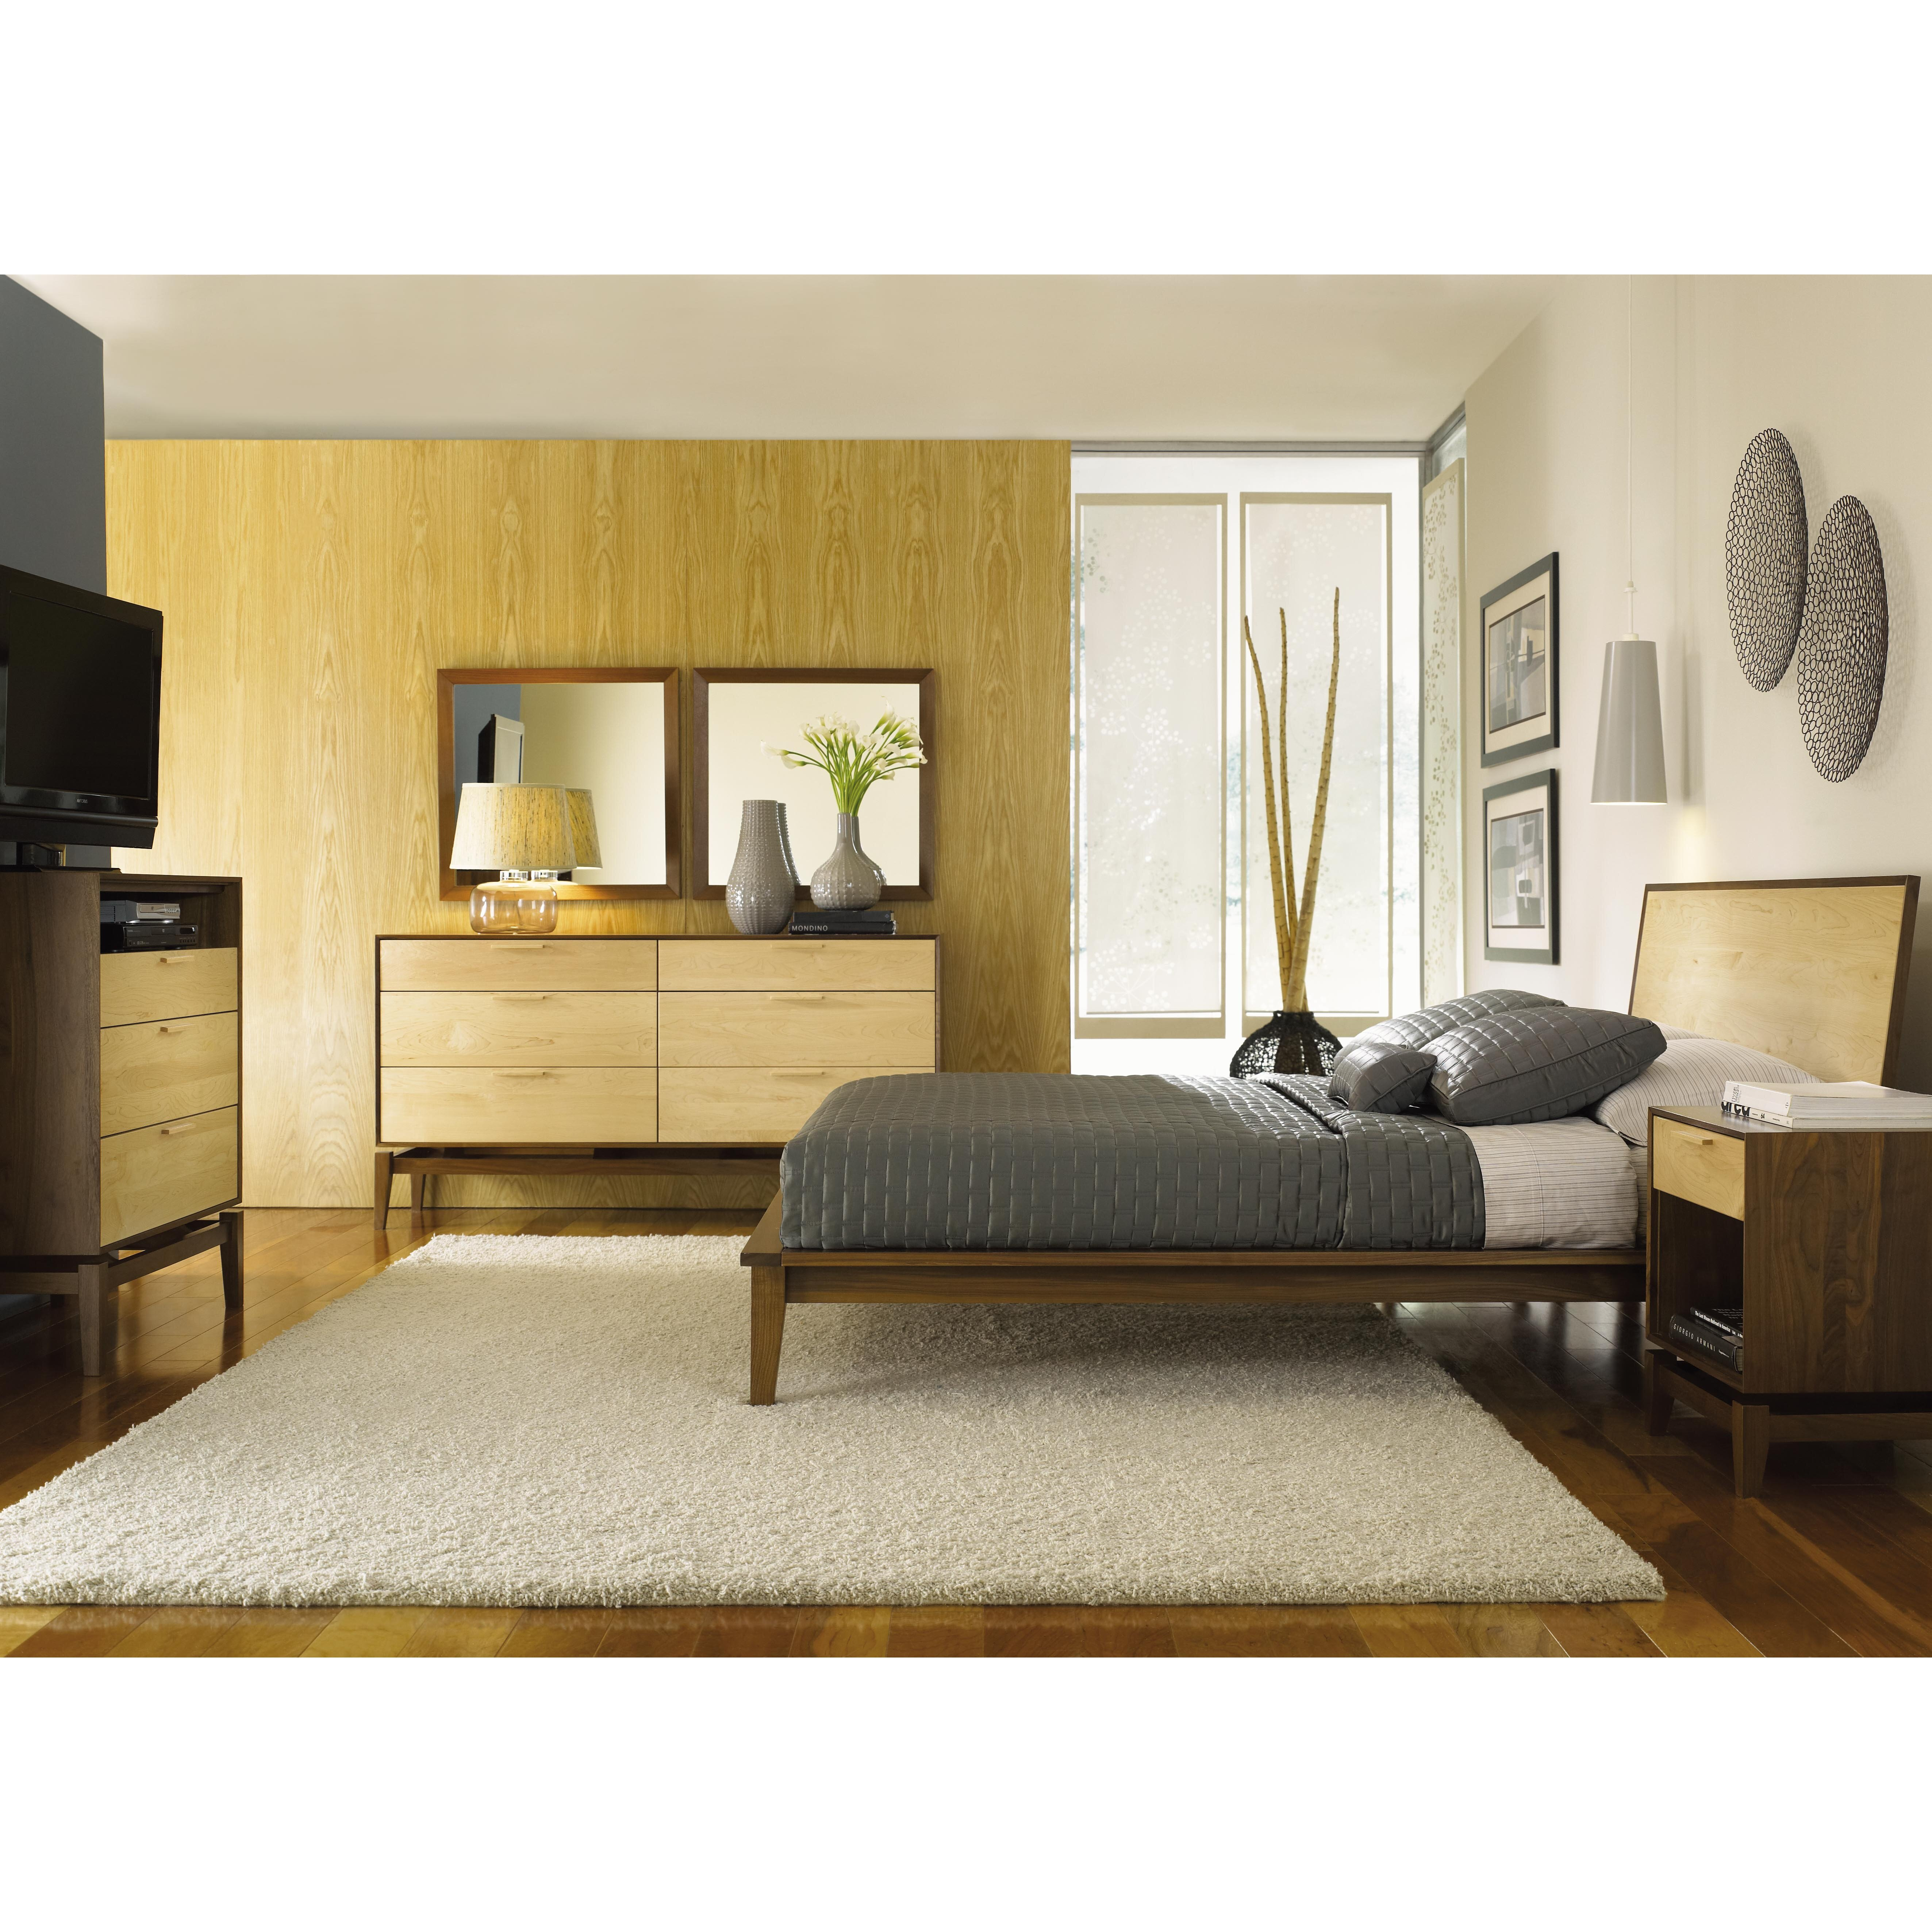 Copeland Furniture Soho Platform Customizable Bedroom Set